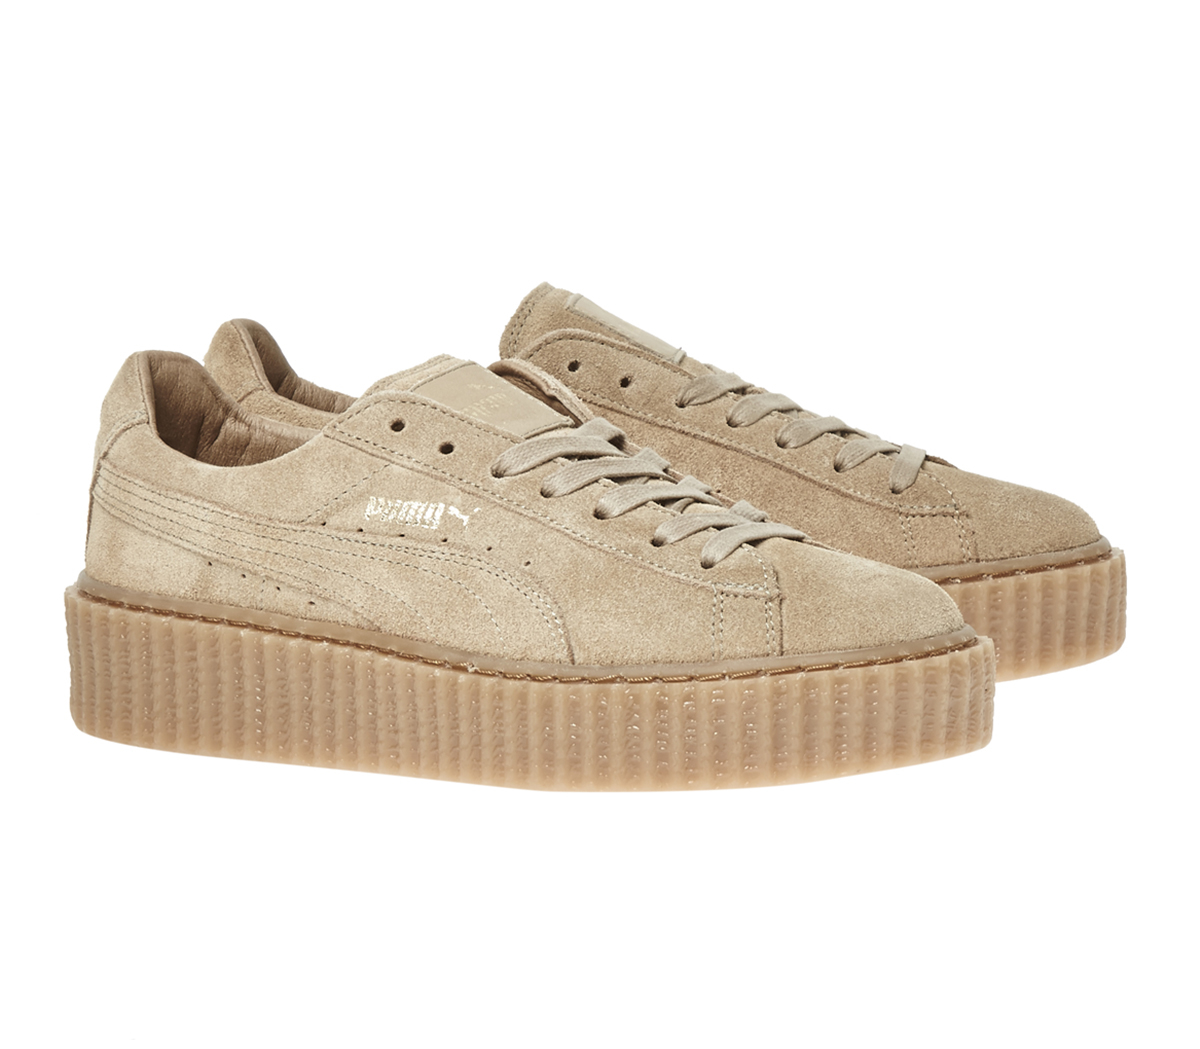 suede puma creepers